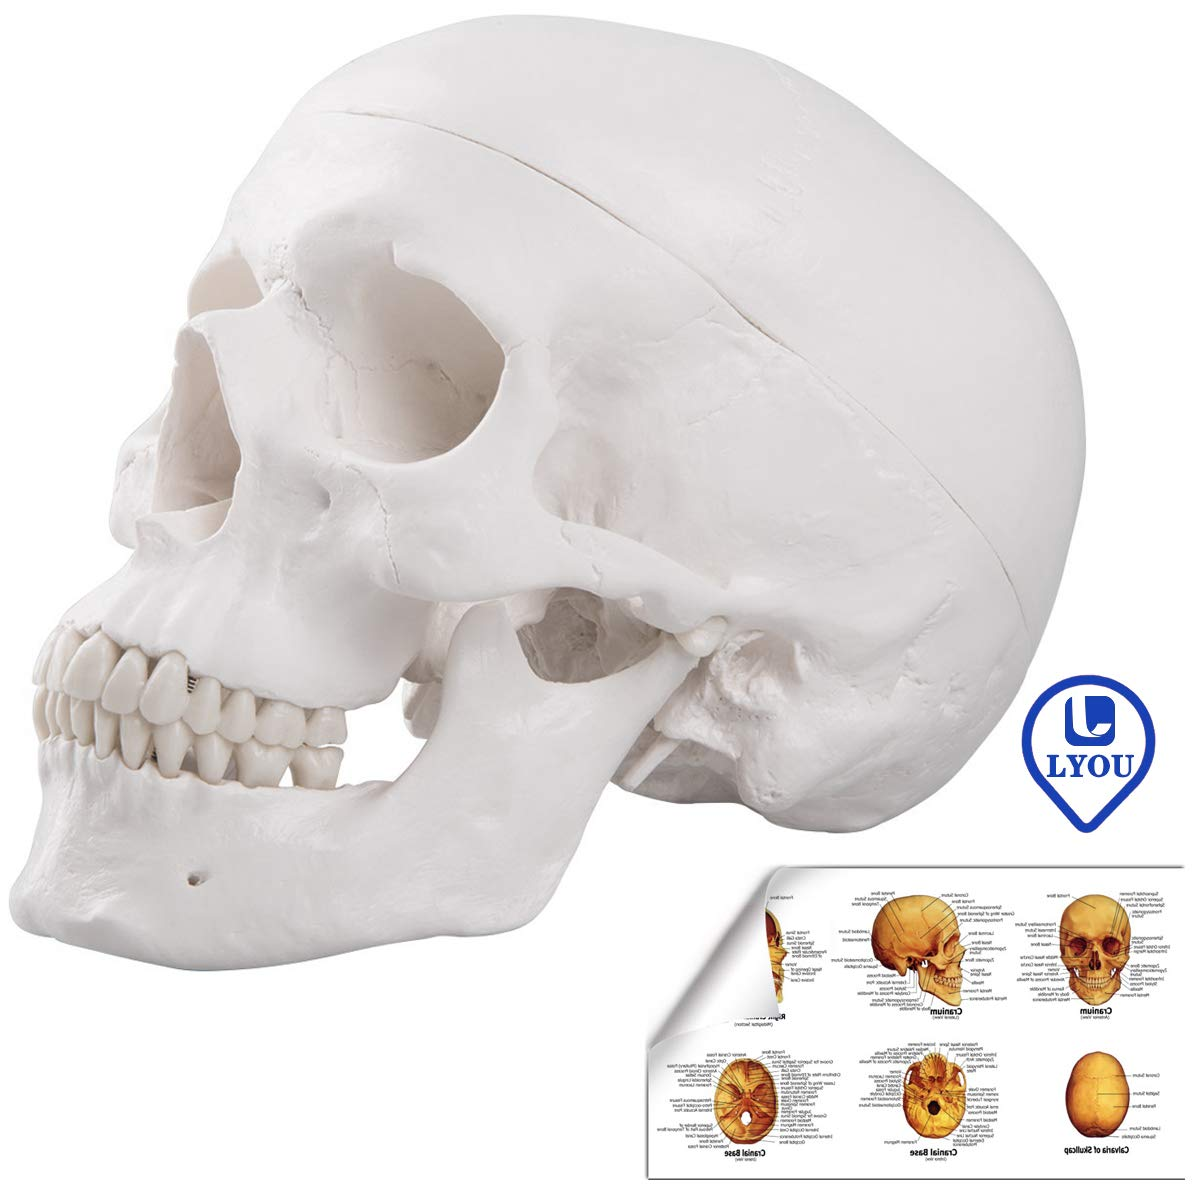 LYOU Human Skull Anatomical Model, Life Size Adult Human Anatomy Head Skeleton Model, Includes Full Set of Teeth, Removable Skull Cap and Articulated Mandible, Labelled Diagram Poster